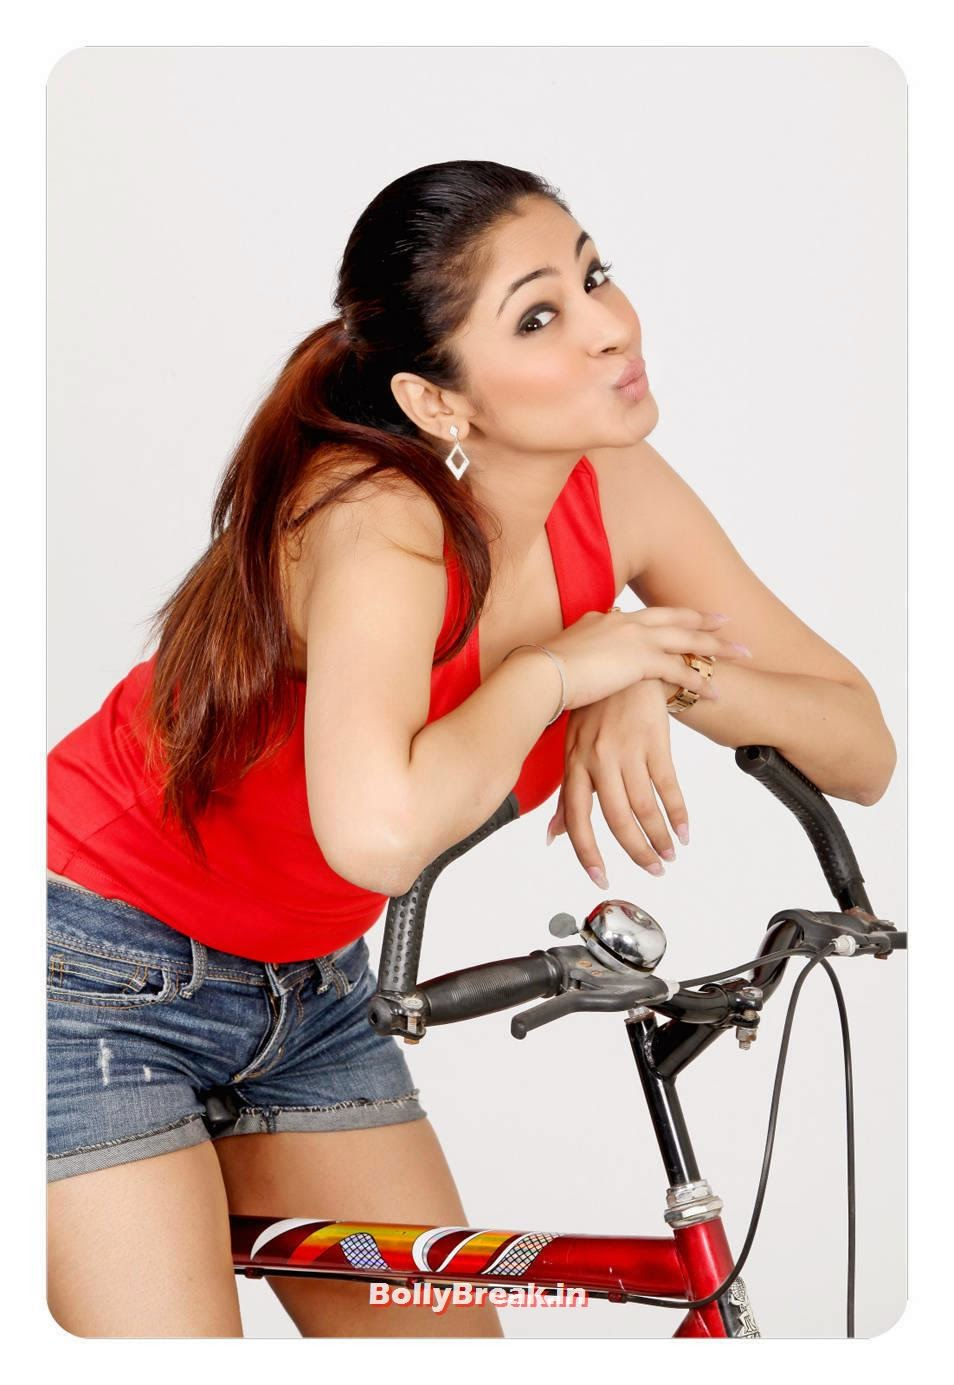 Shilpi Sharma Photo Gallery, Shilpi Sharma hot Pics with Bicycle in Red Top & shorts